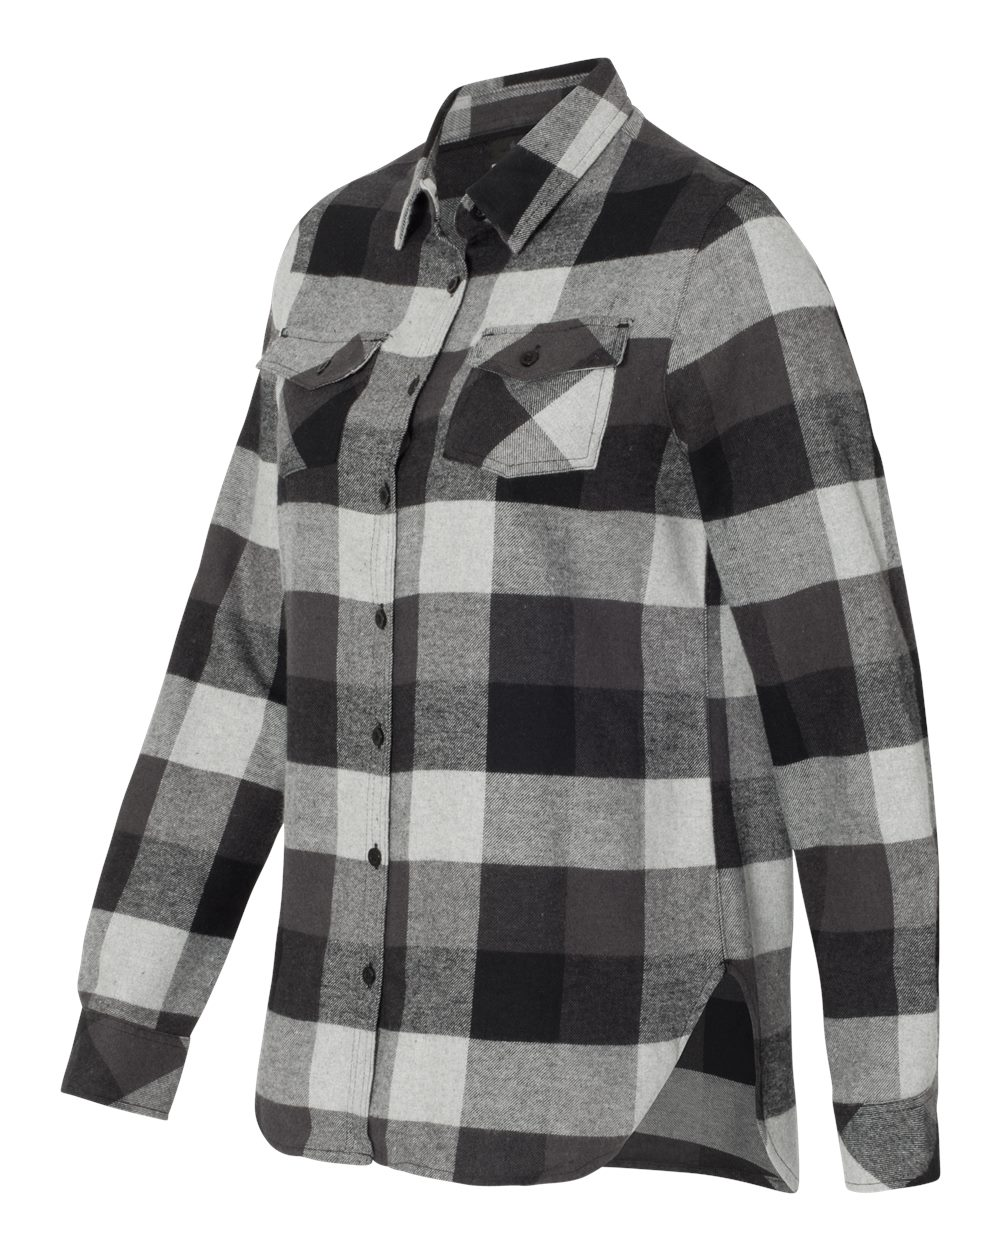 Burnside 5210 - Women's Yarn-Dyed Long Sleeve Flannel ...